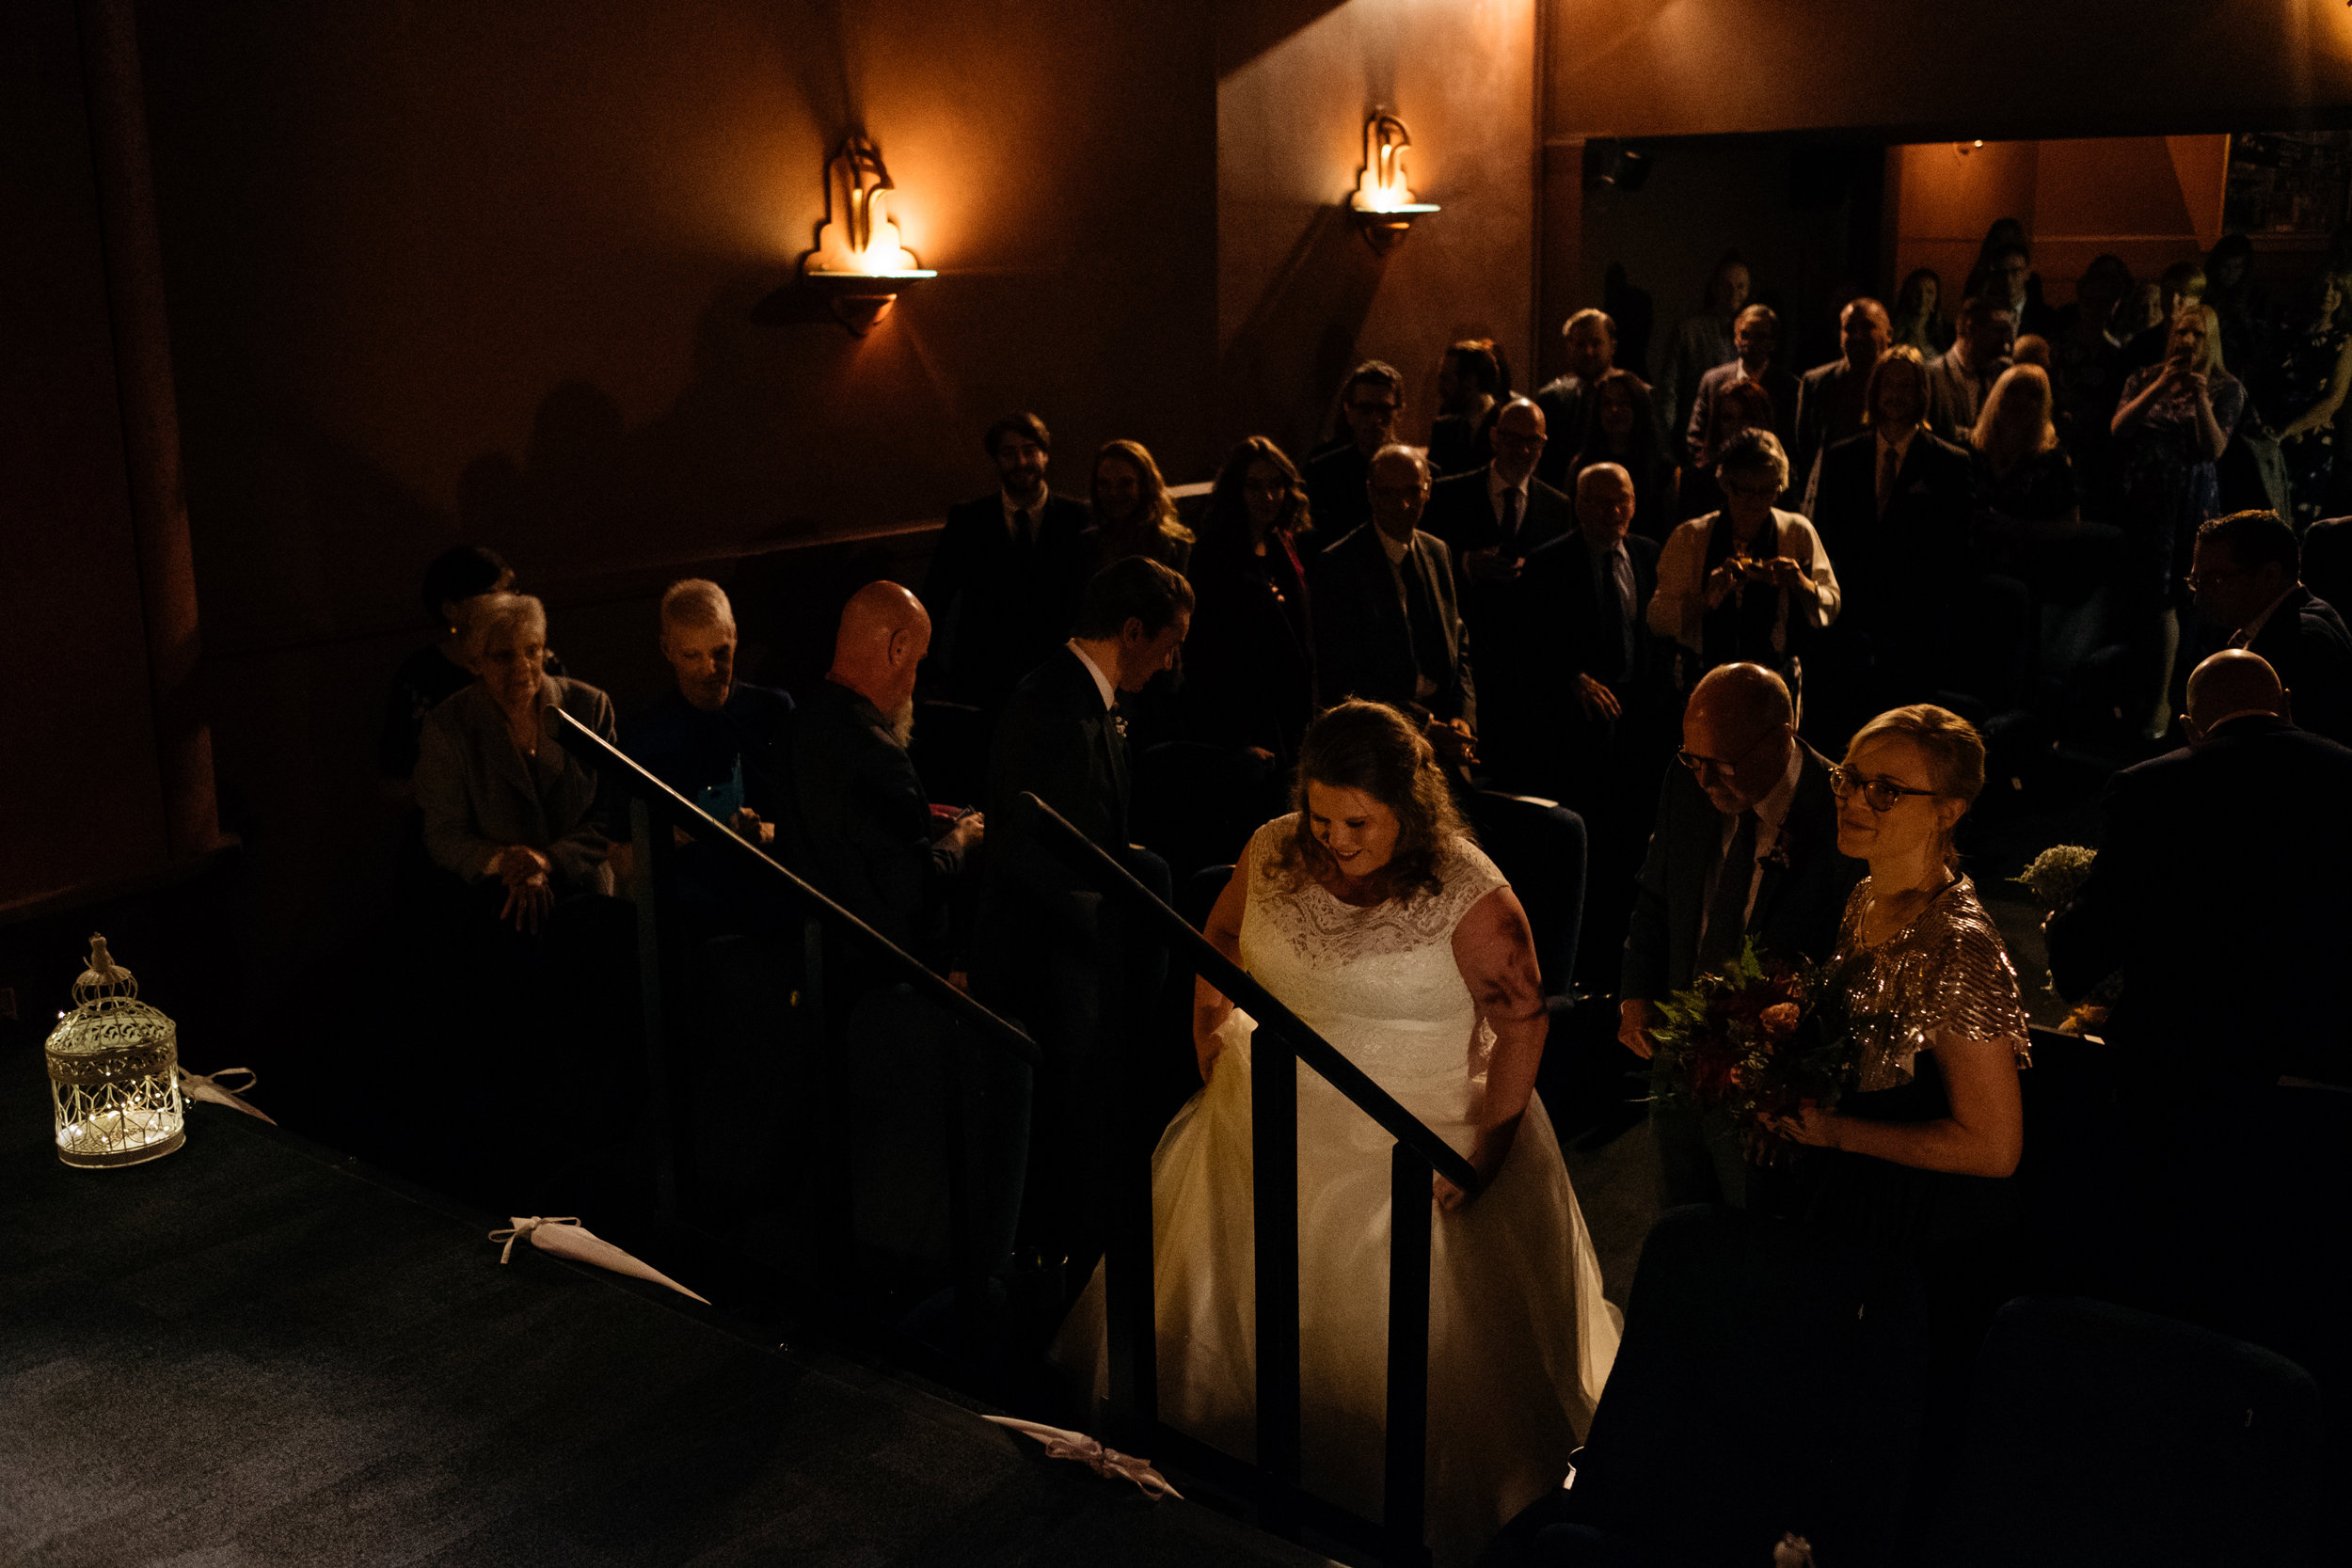 Bride walks along aisle in the Little Theatre in Bath